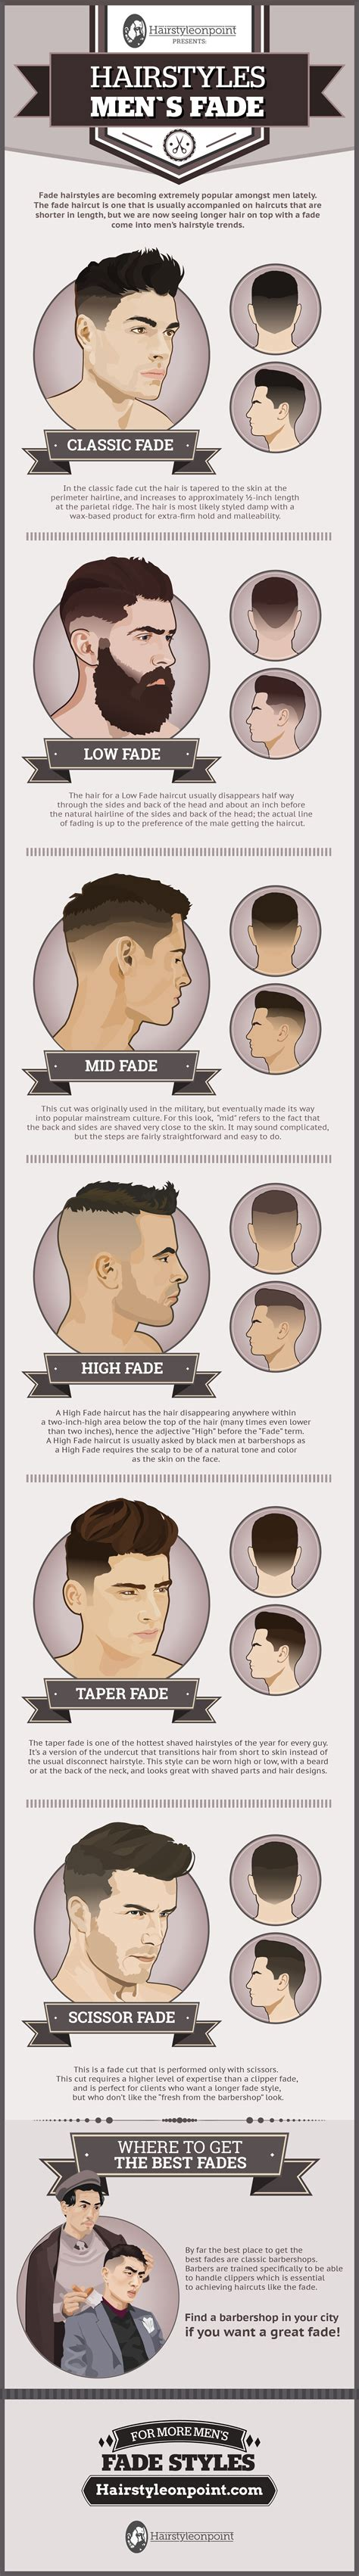 mens haircuts guide men s hairstyles a simple guide to popular and modern